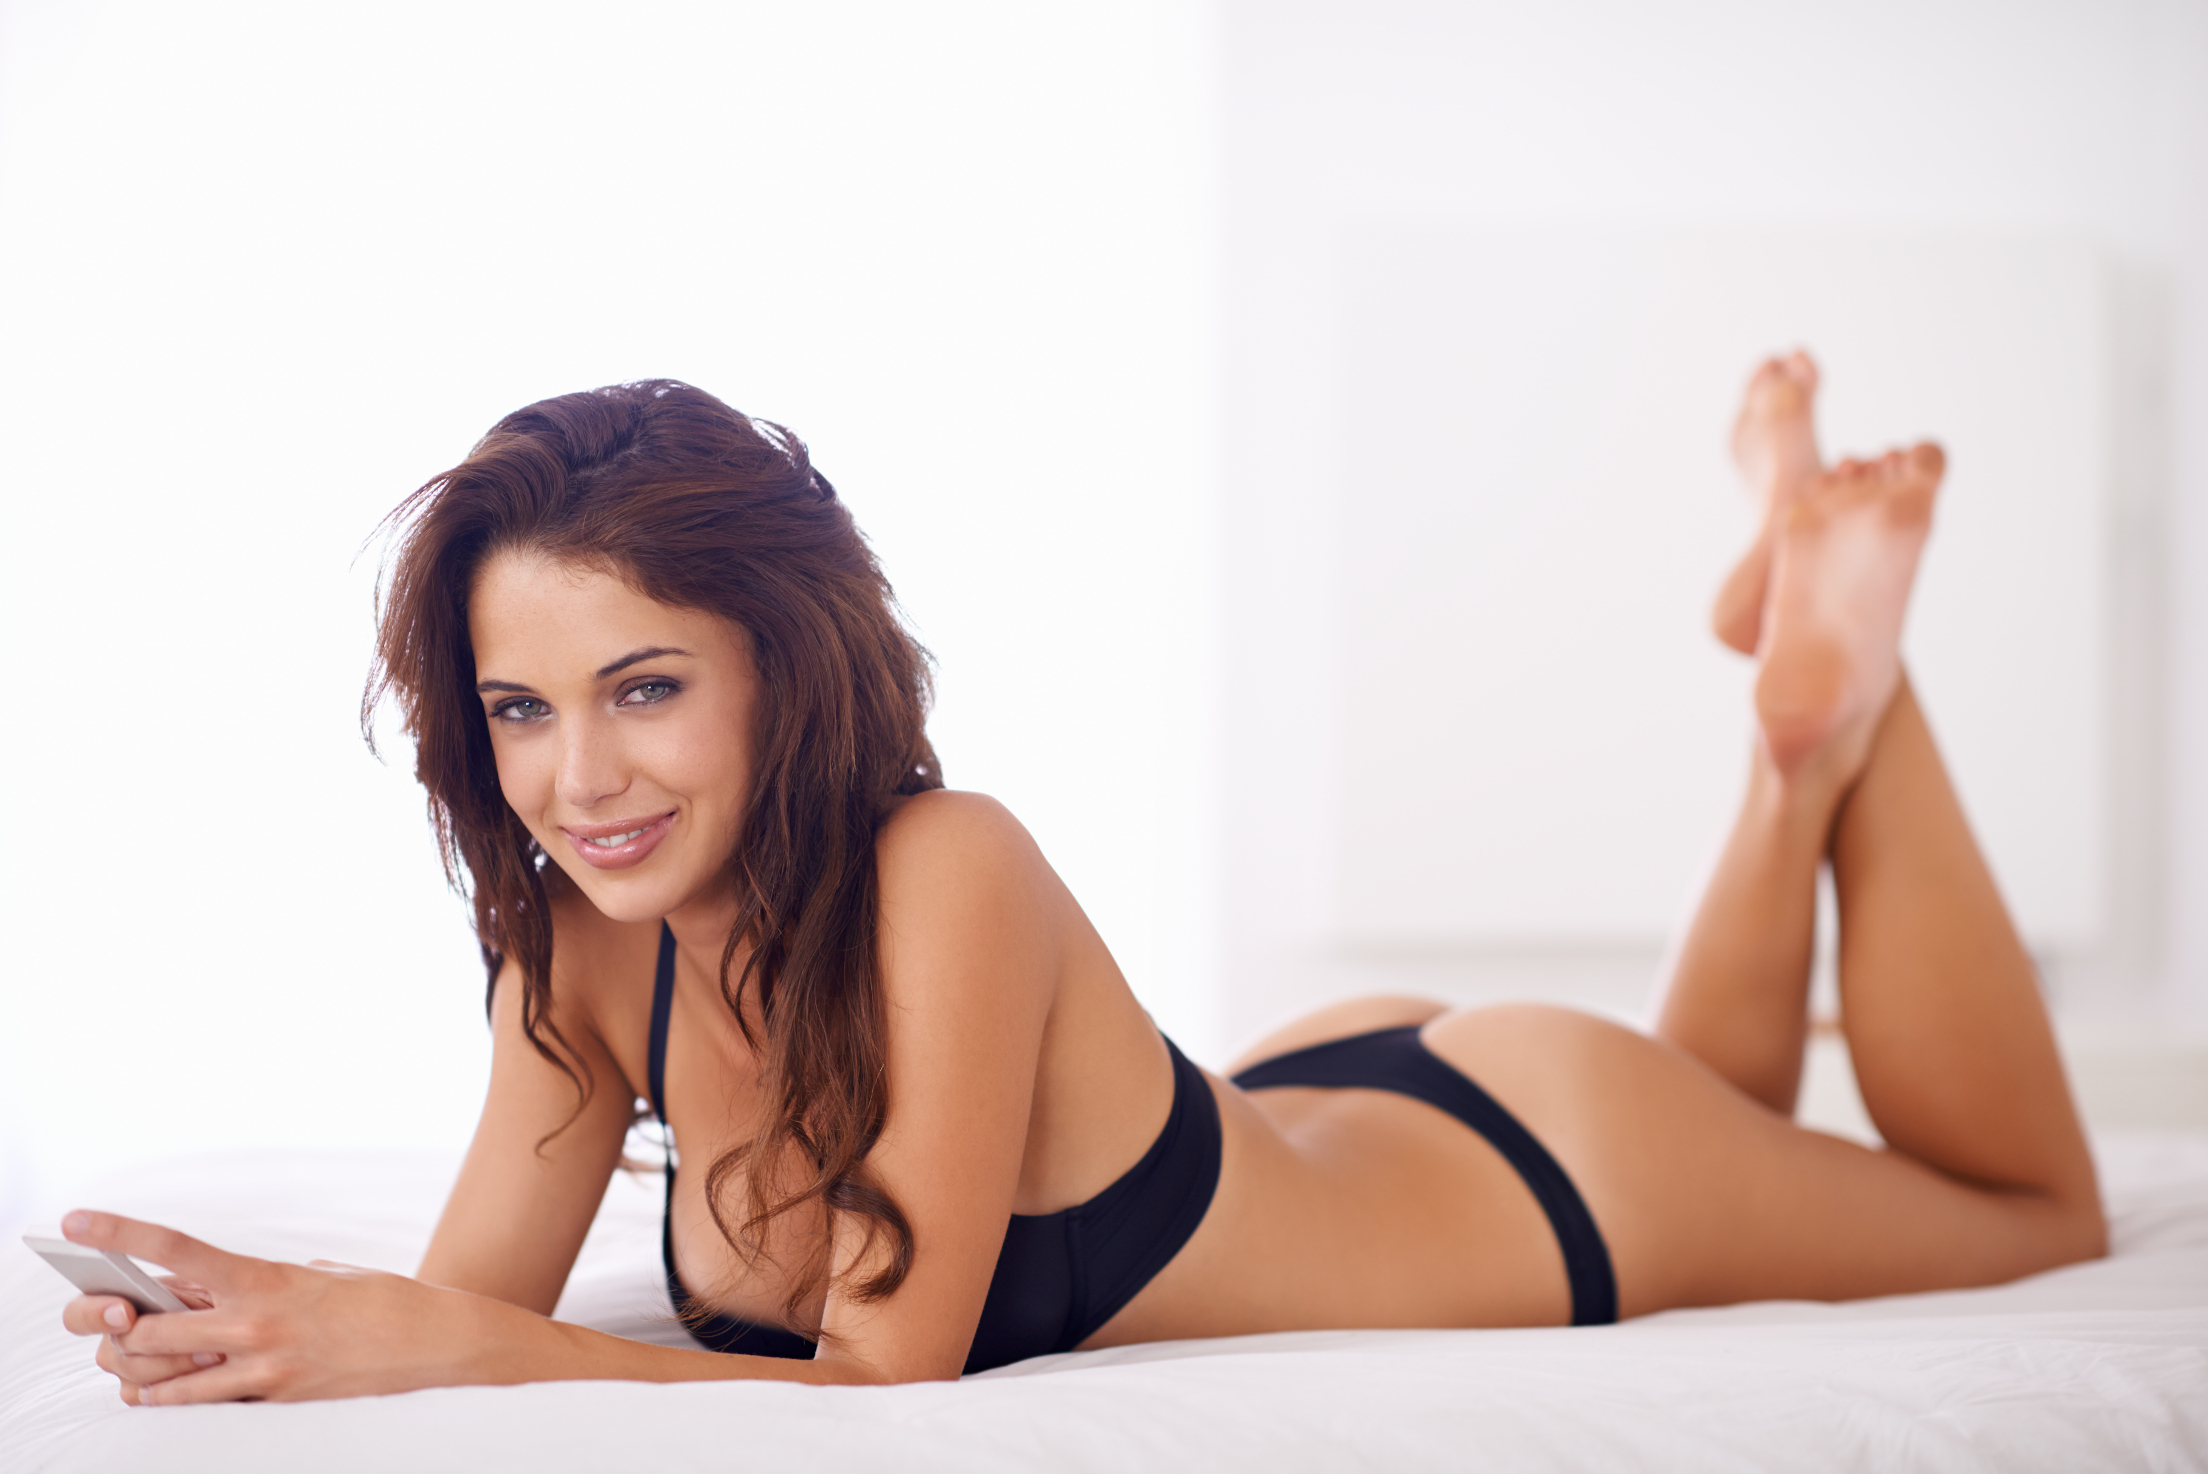 A young woman in her underwear sending a text message while lying on the bed